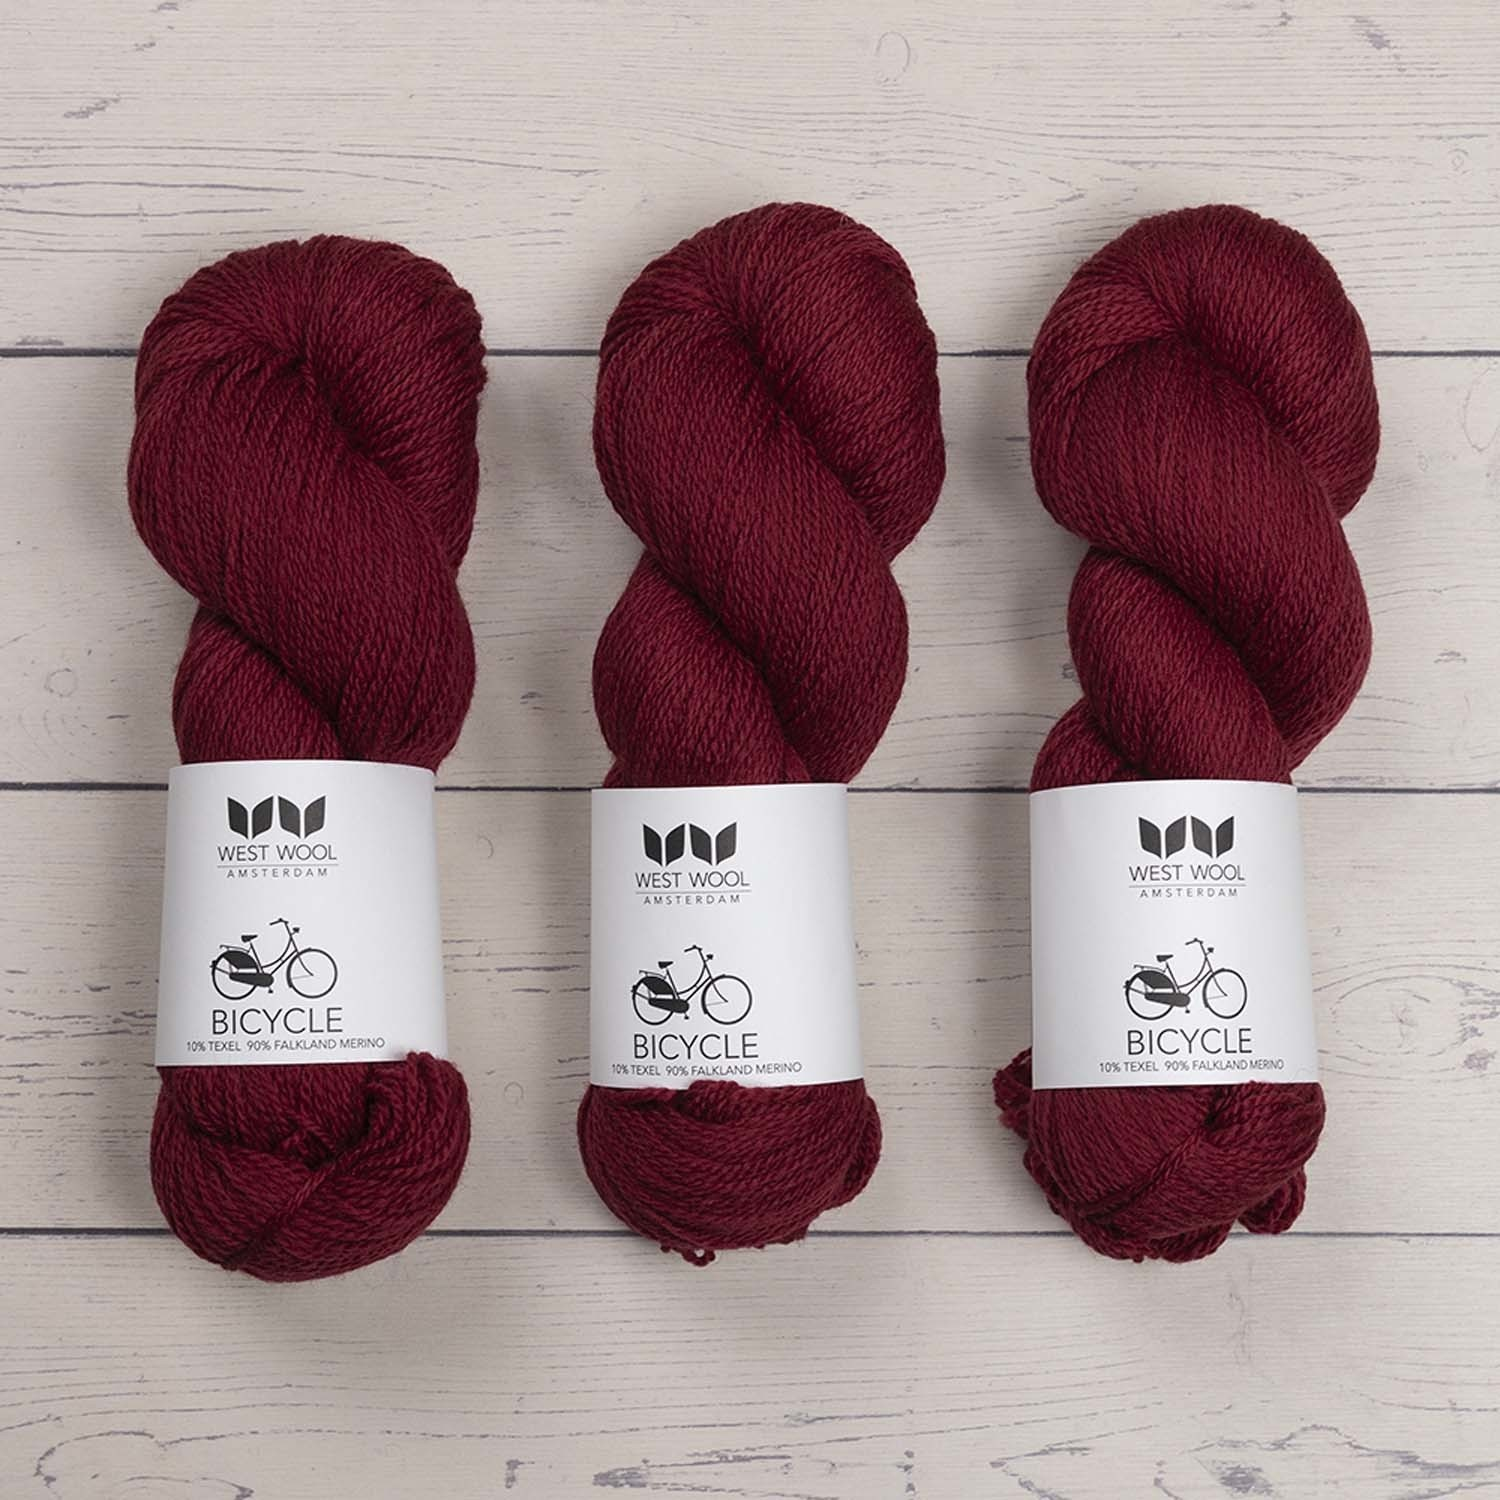 West Wool BICYCLE BERRY